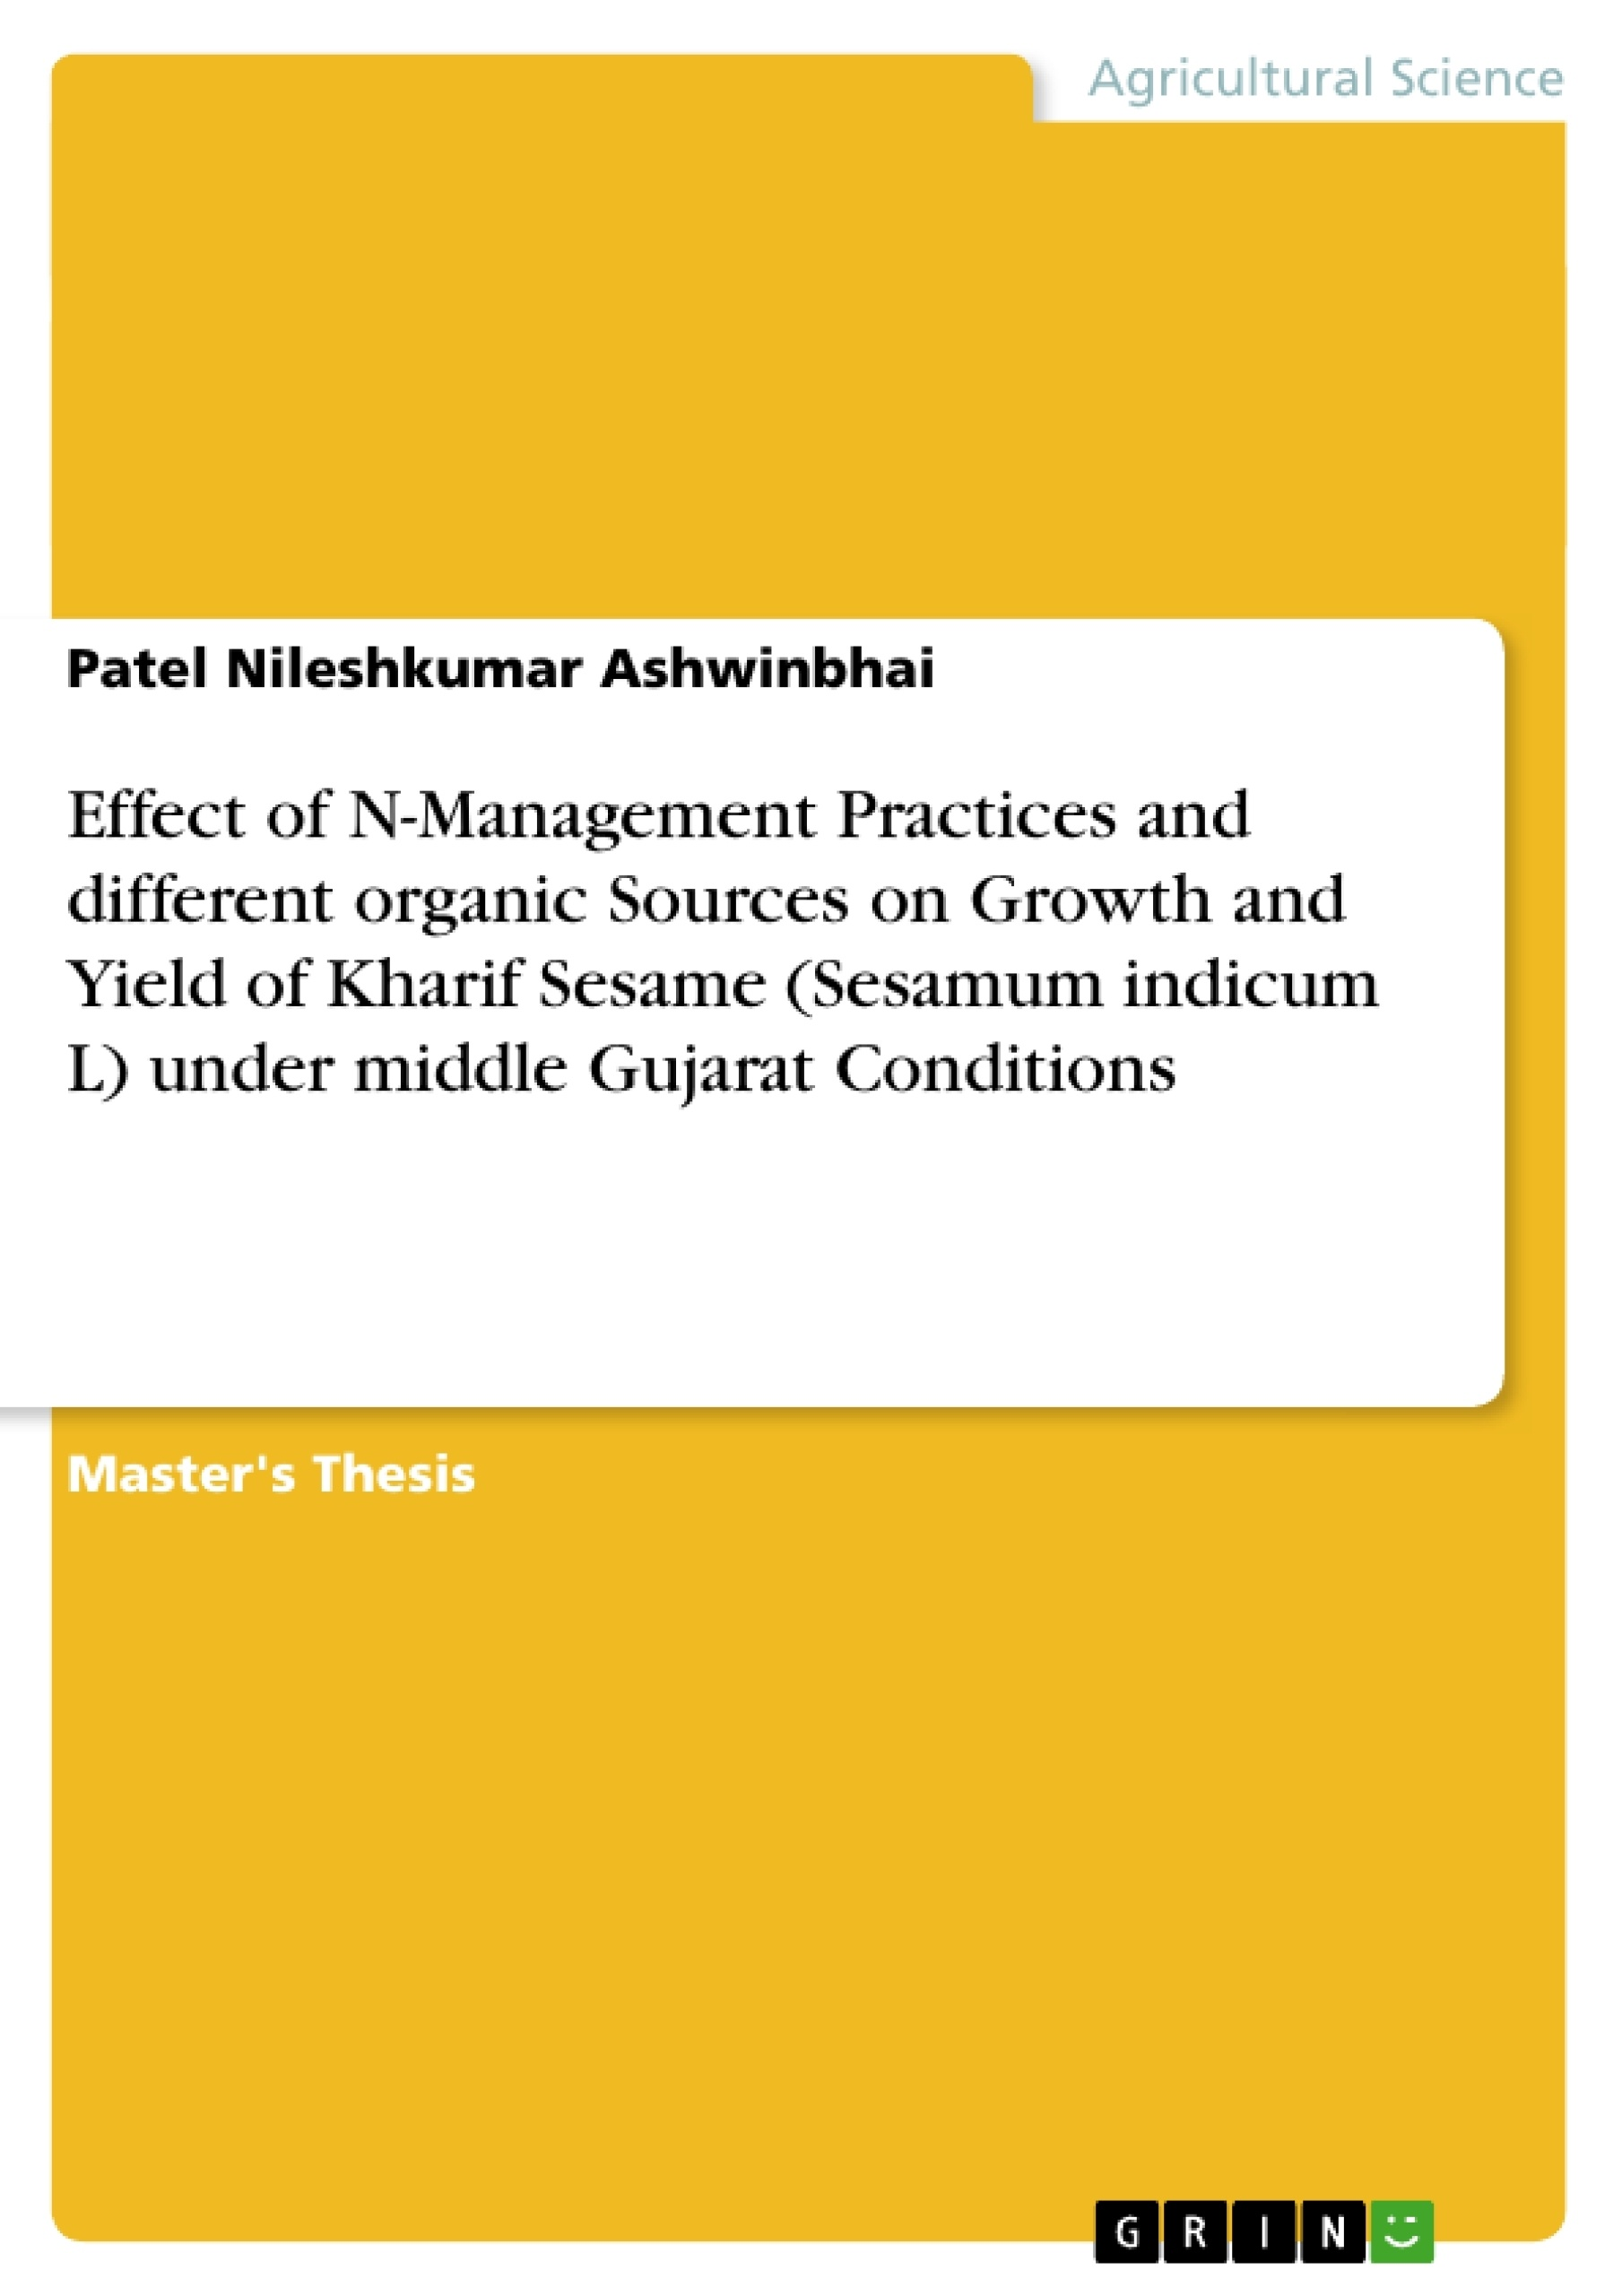 Title: Effect of N-Management Practices and different organic Sources on Growth and Yield of Kharif Sesame (Sesamum indicum L) under middle Gujarat Conditions